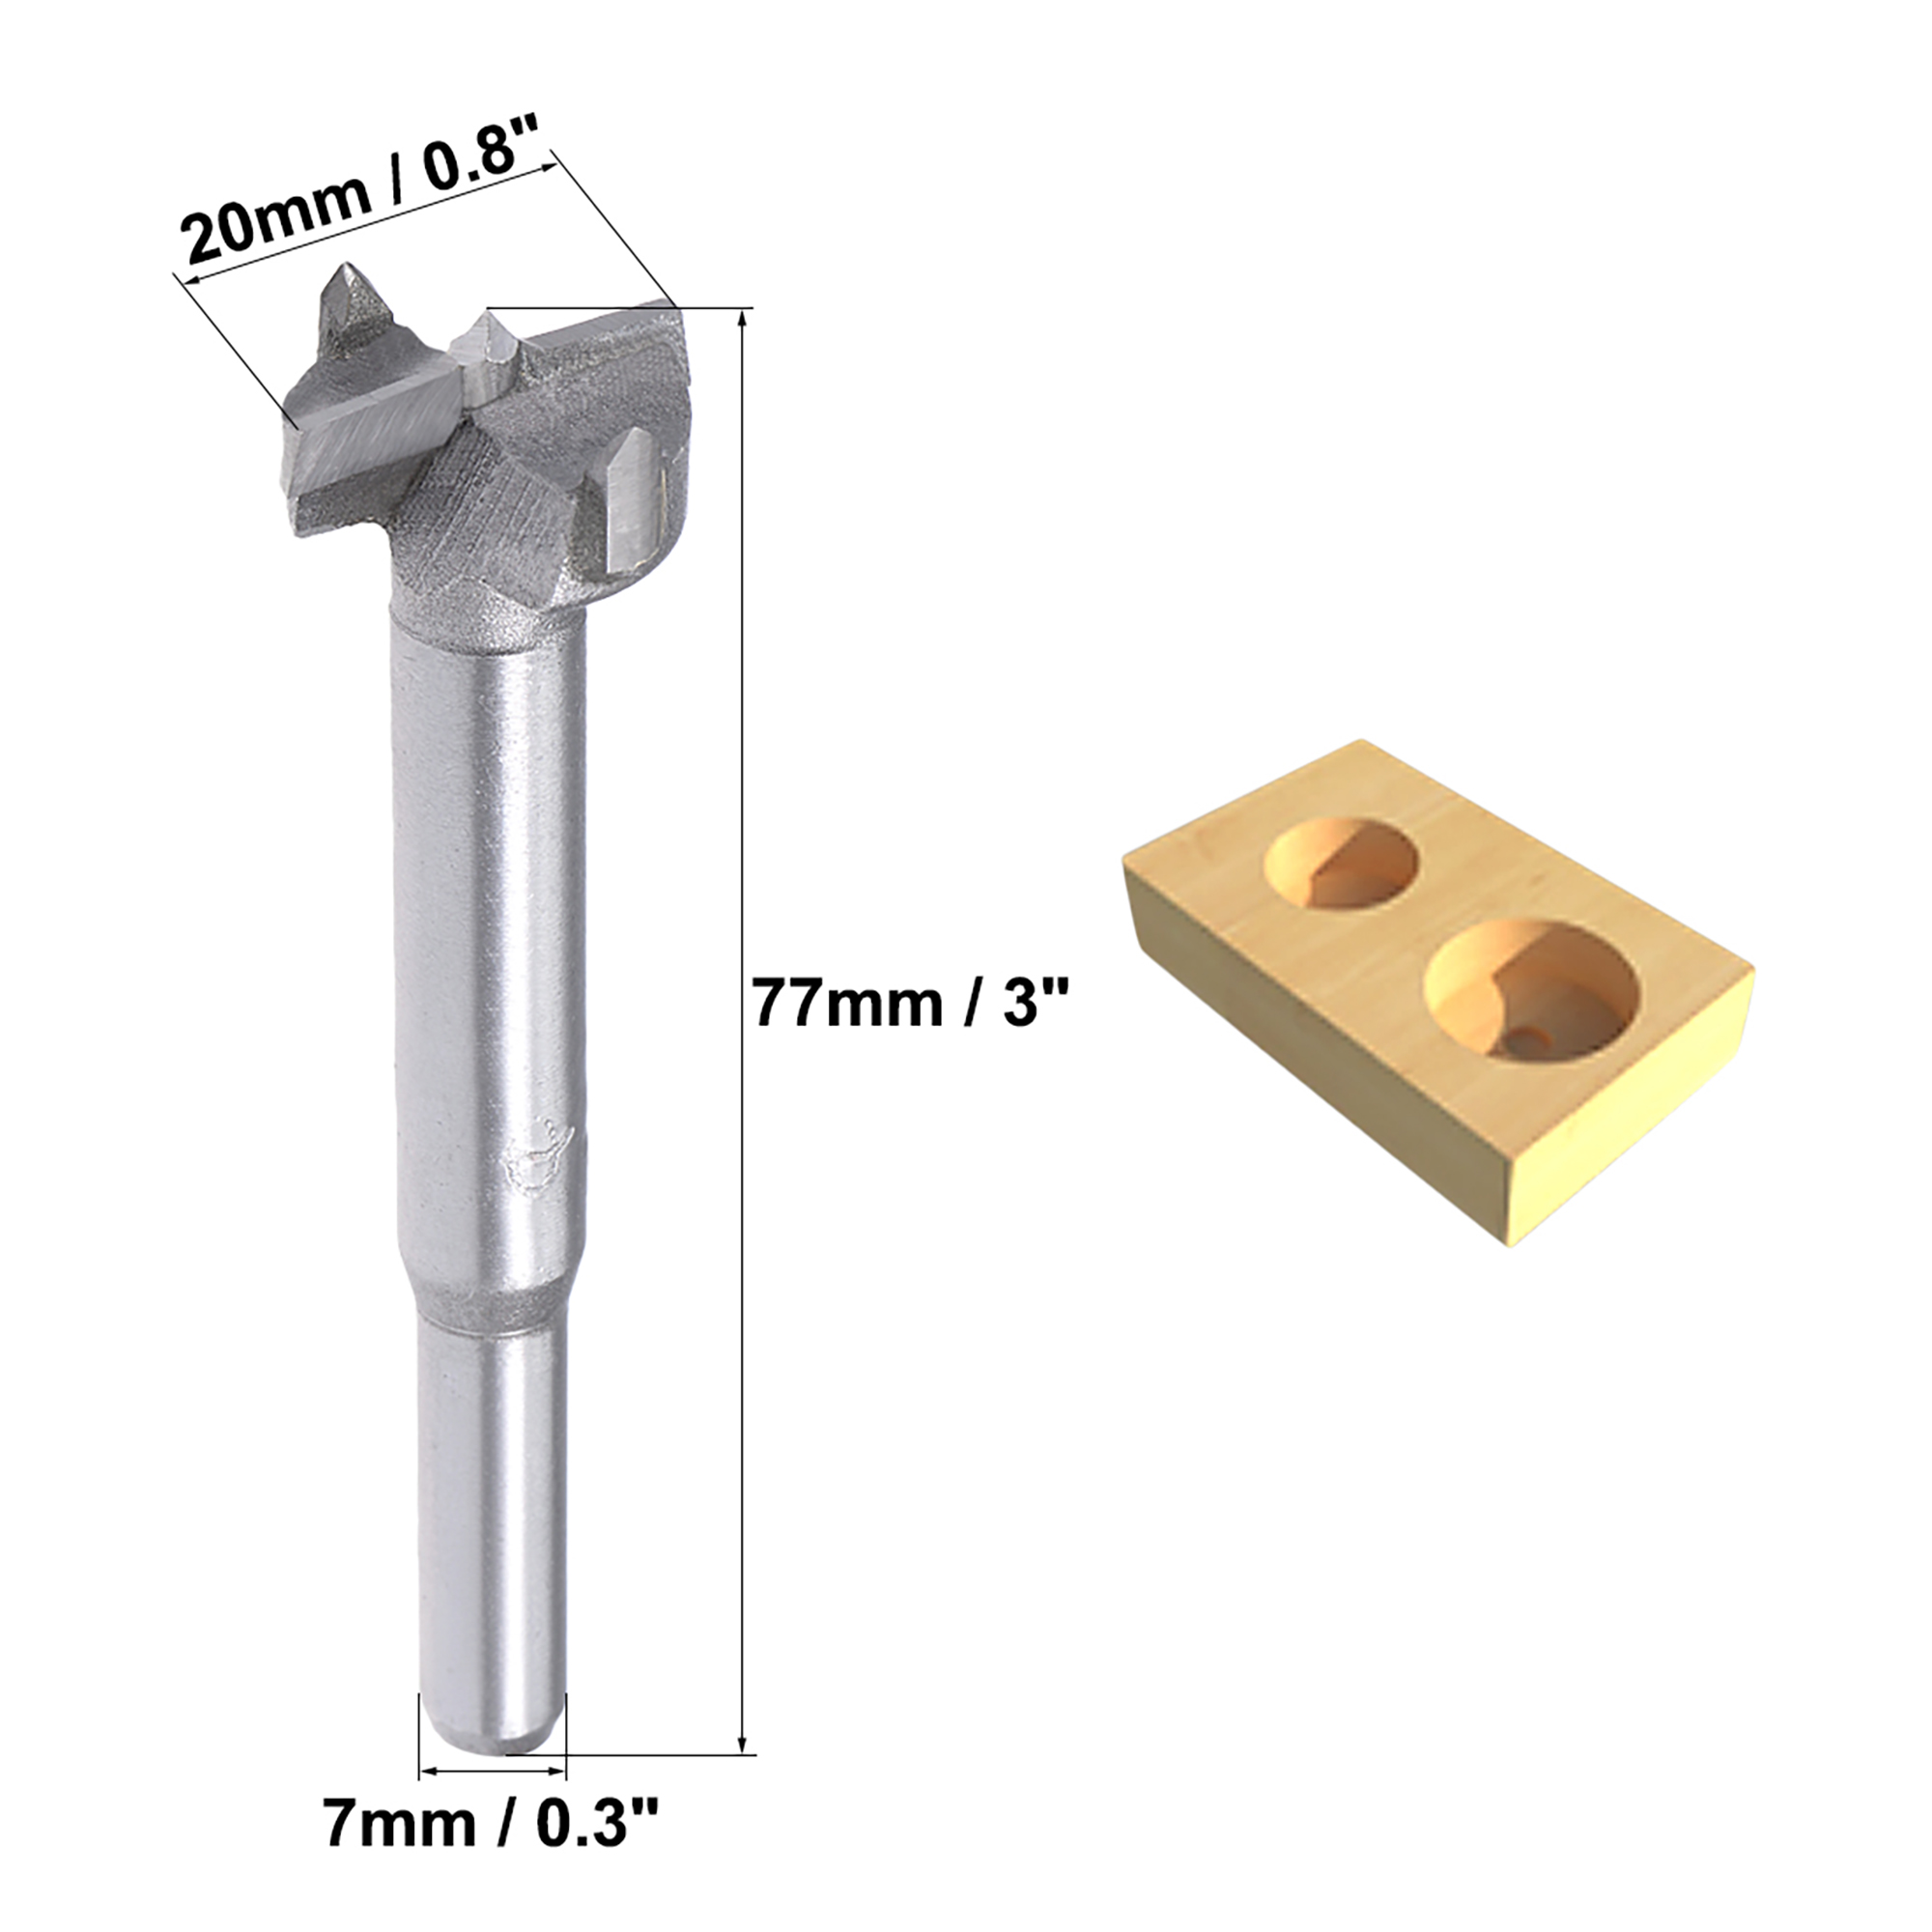 Forstner Wood Boring Drill Bit 20mm Dia Hole Saw Carbide Tip Round Shank Cutting for Hinge Plywood MDF CNC Tool - image 4 de 5